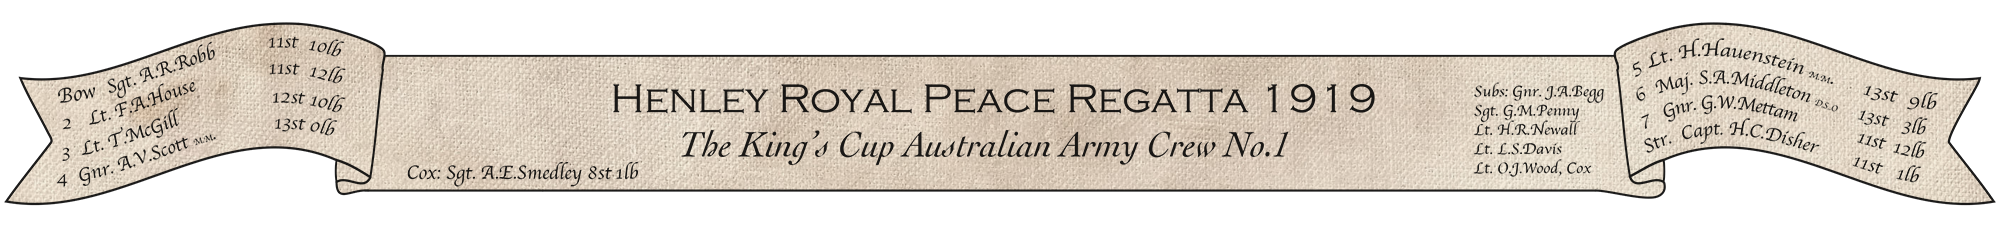 Australian-Army-Crew-No.1-1919.png